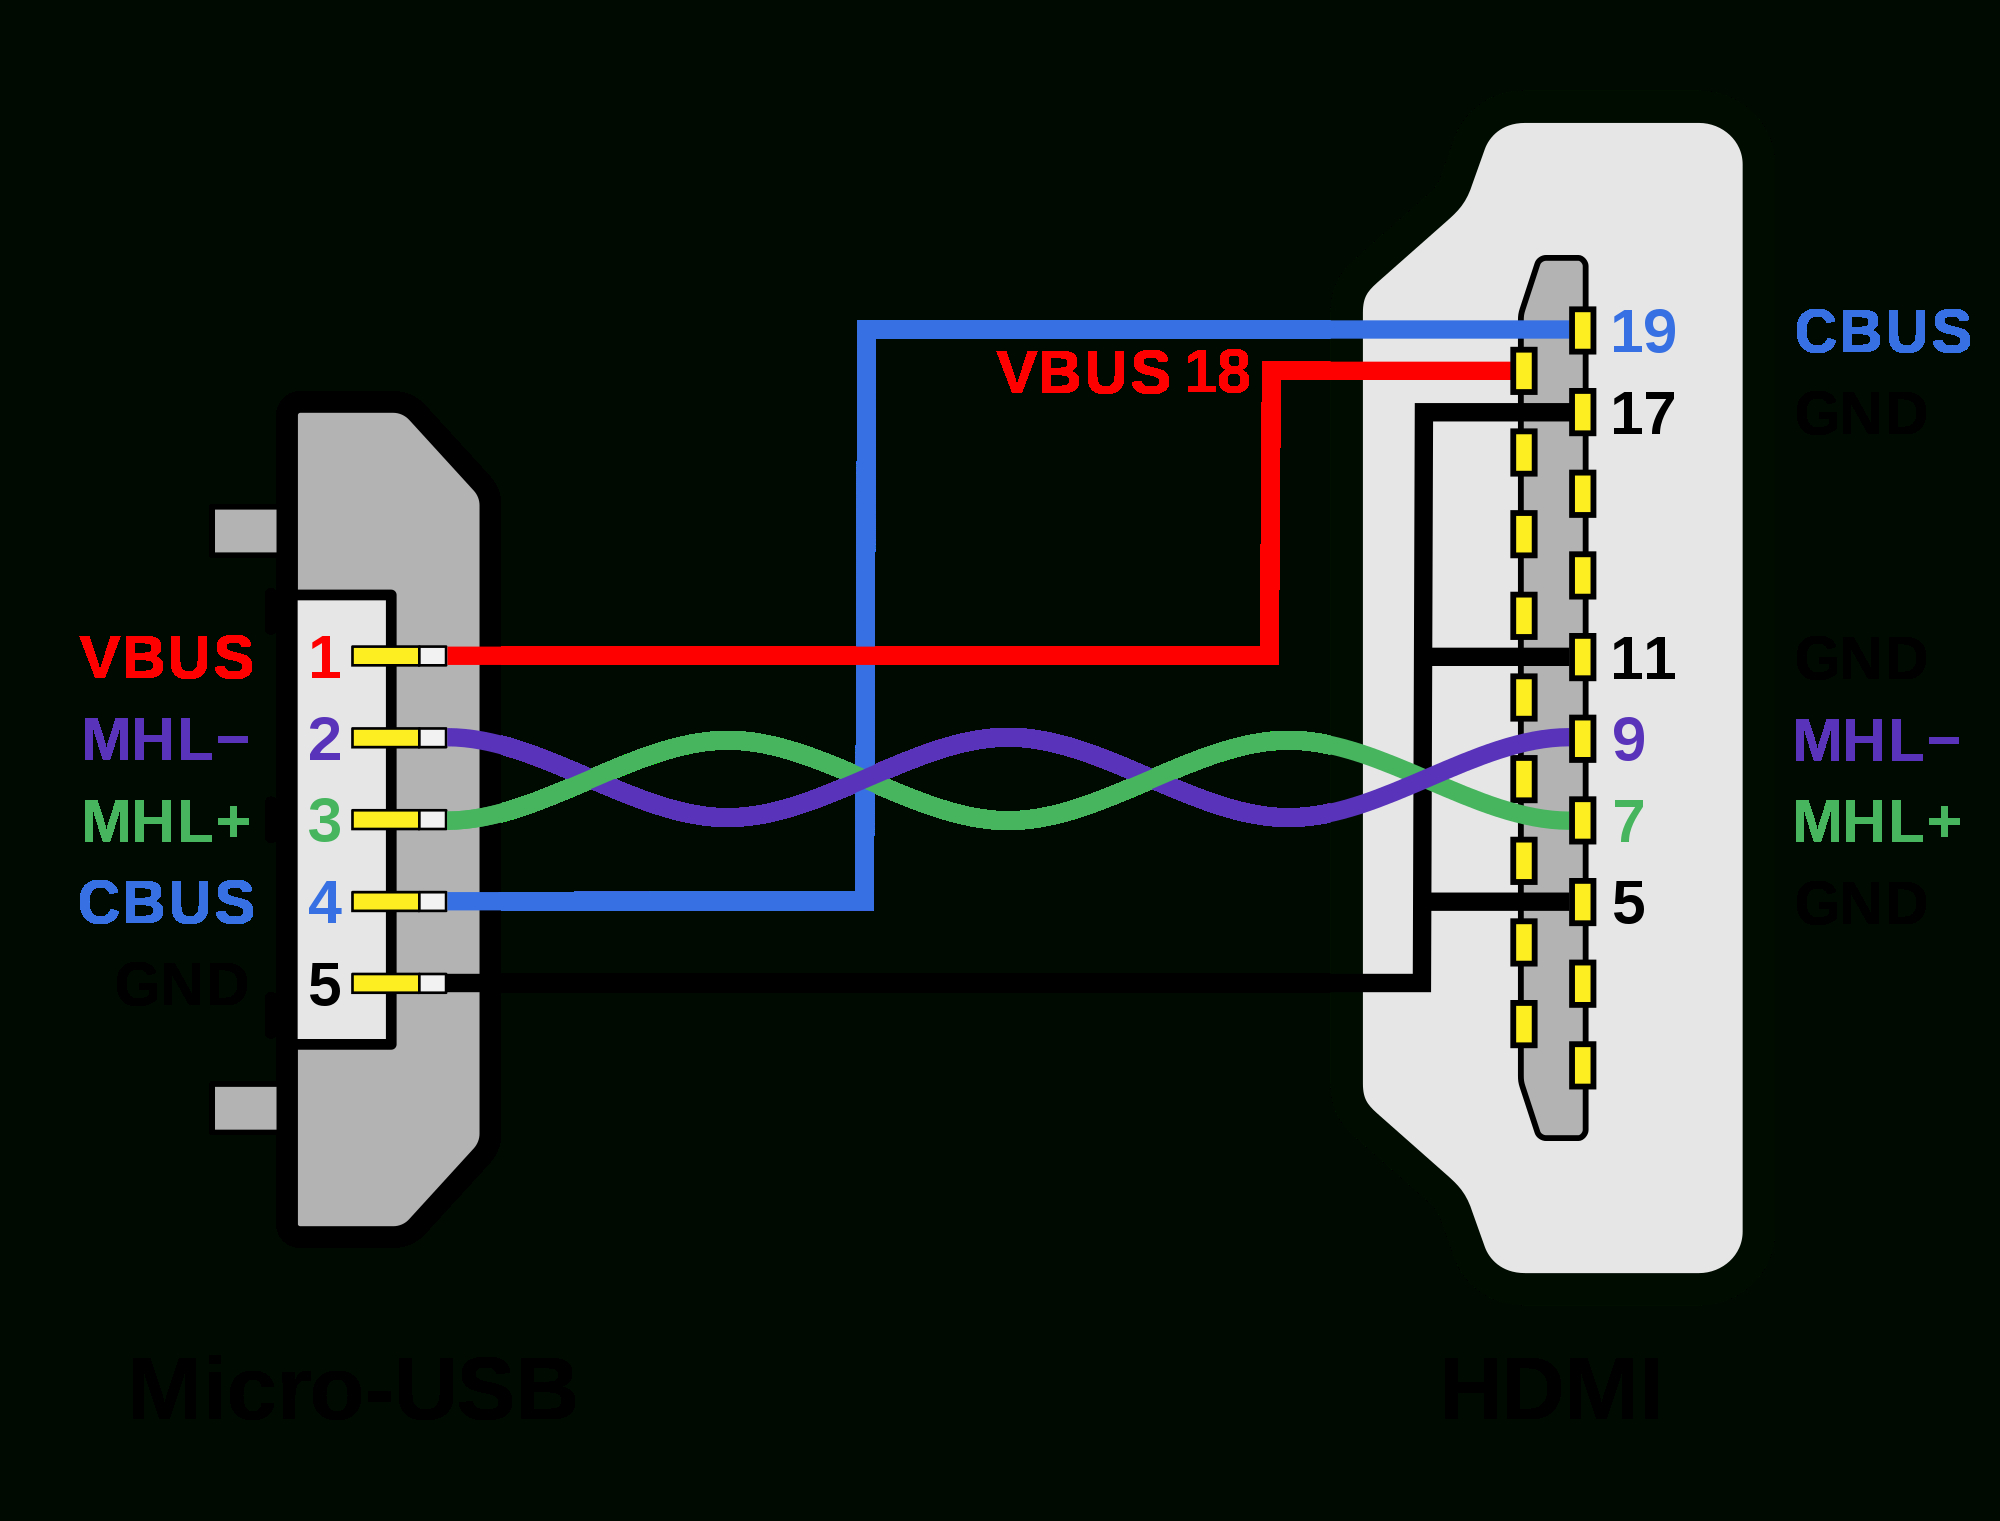 File:mhl Micro-Usb - Hdmi Wiring Diagram.svg - Wikimedia Commons - Usb Otg Cable To Micro Usb To Mini Usb Wiring Diagram